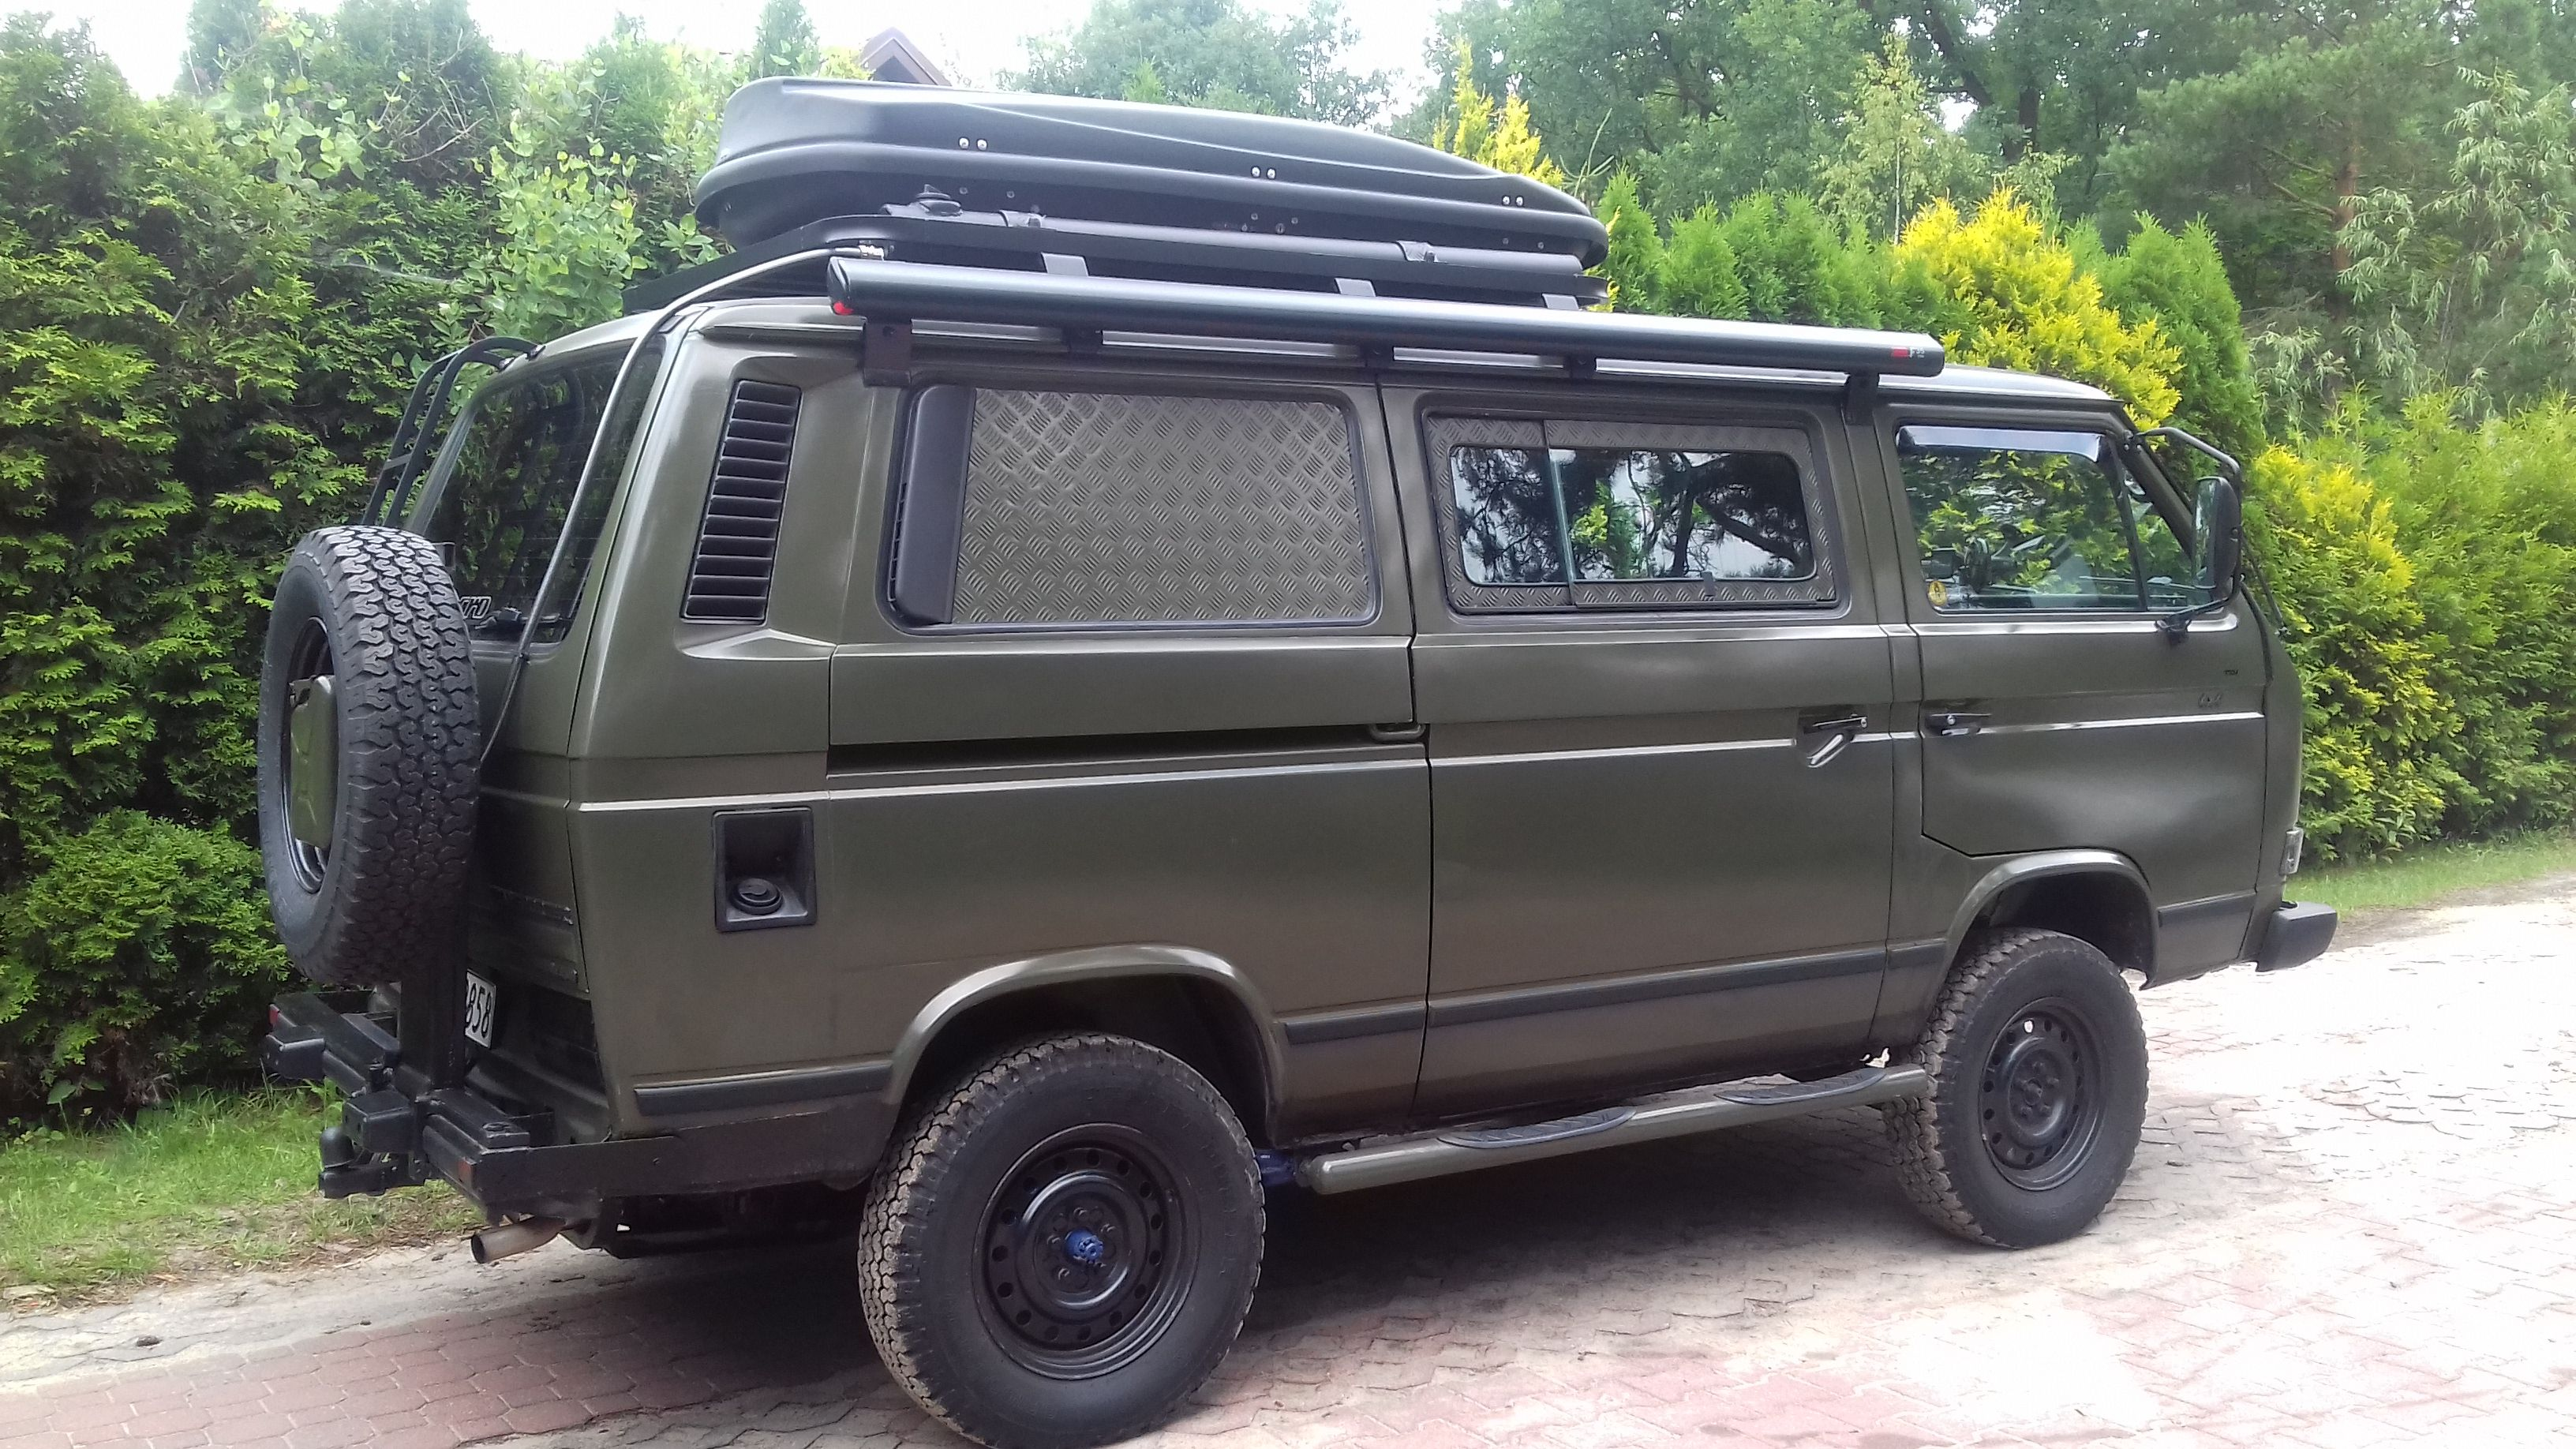 List of Synonyms and Antonyms of the Word: syncro camper